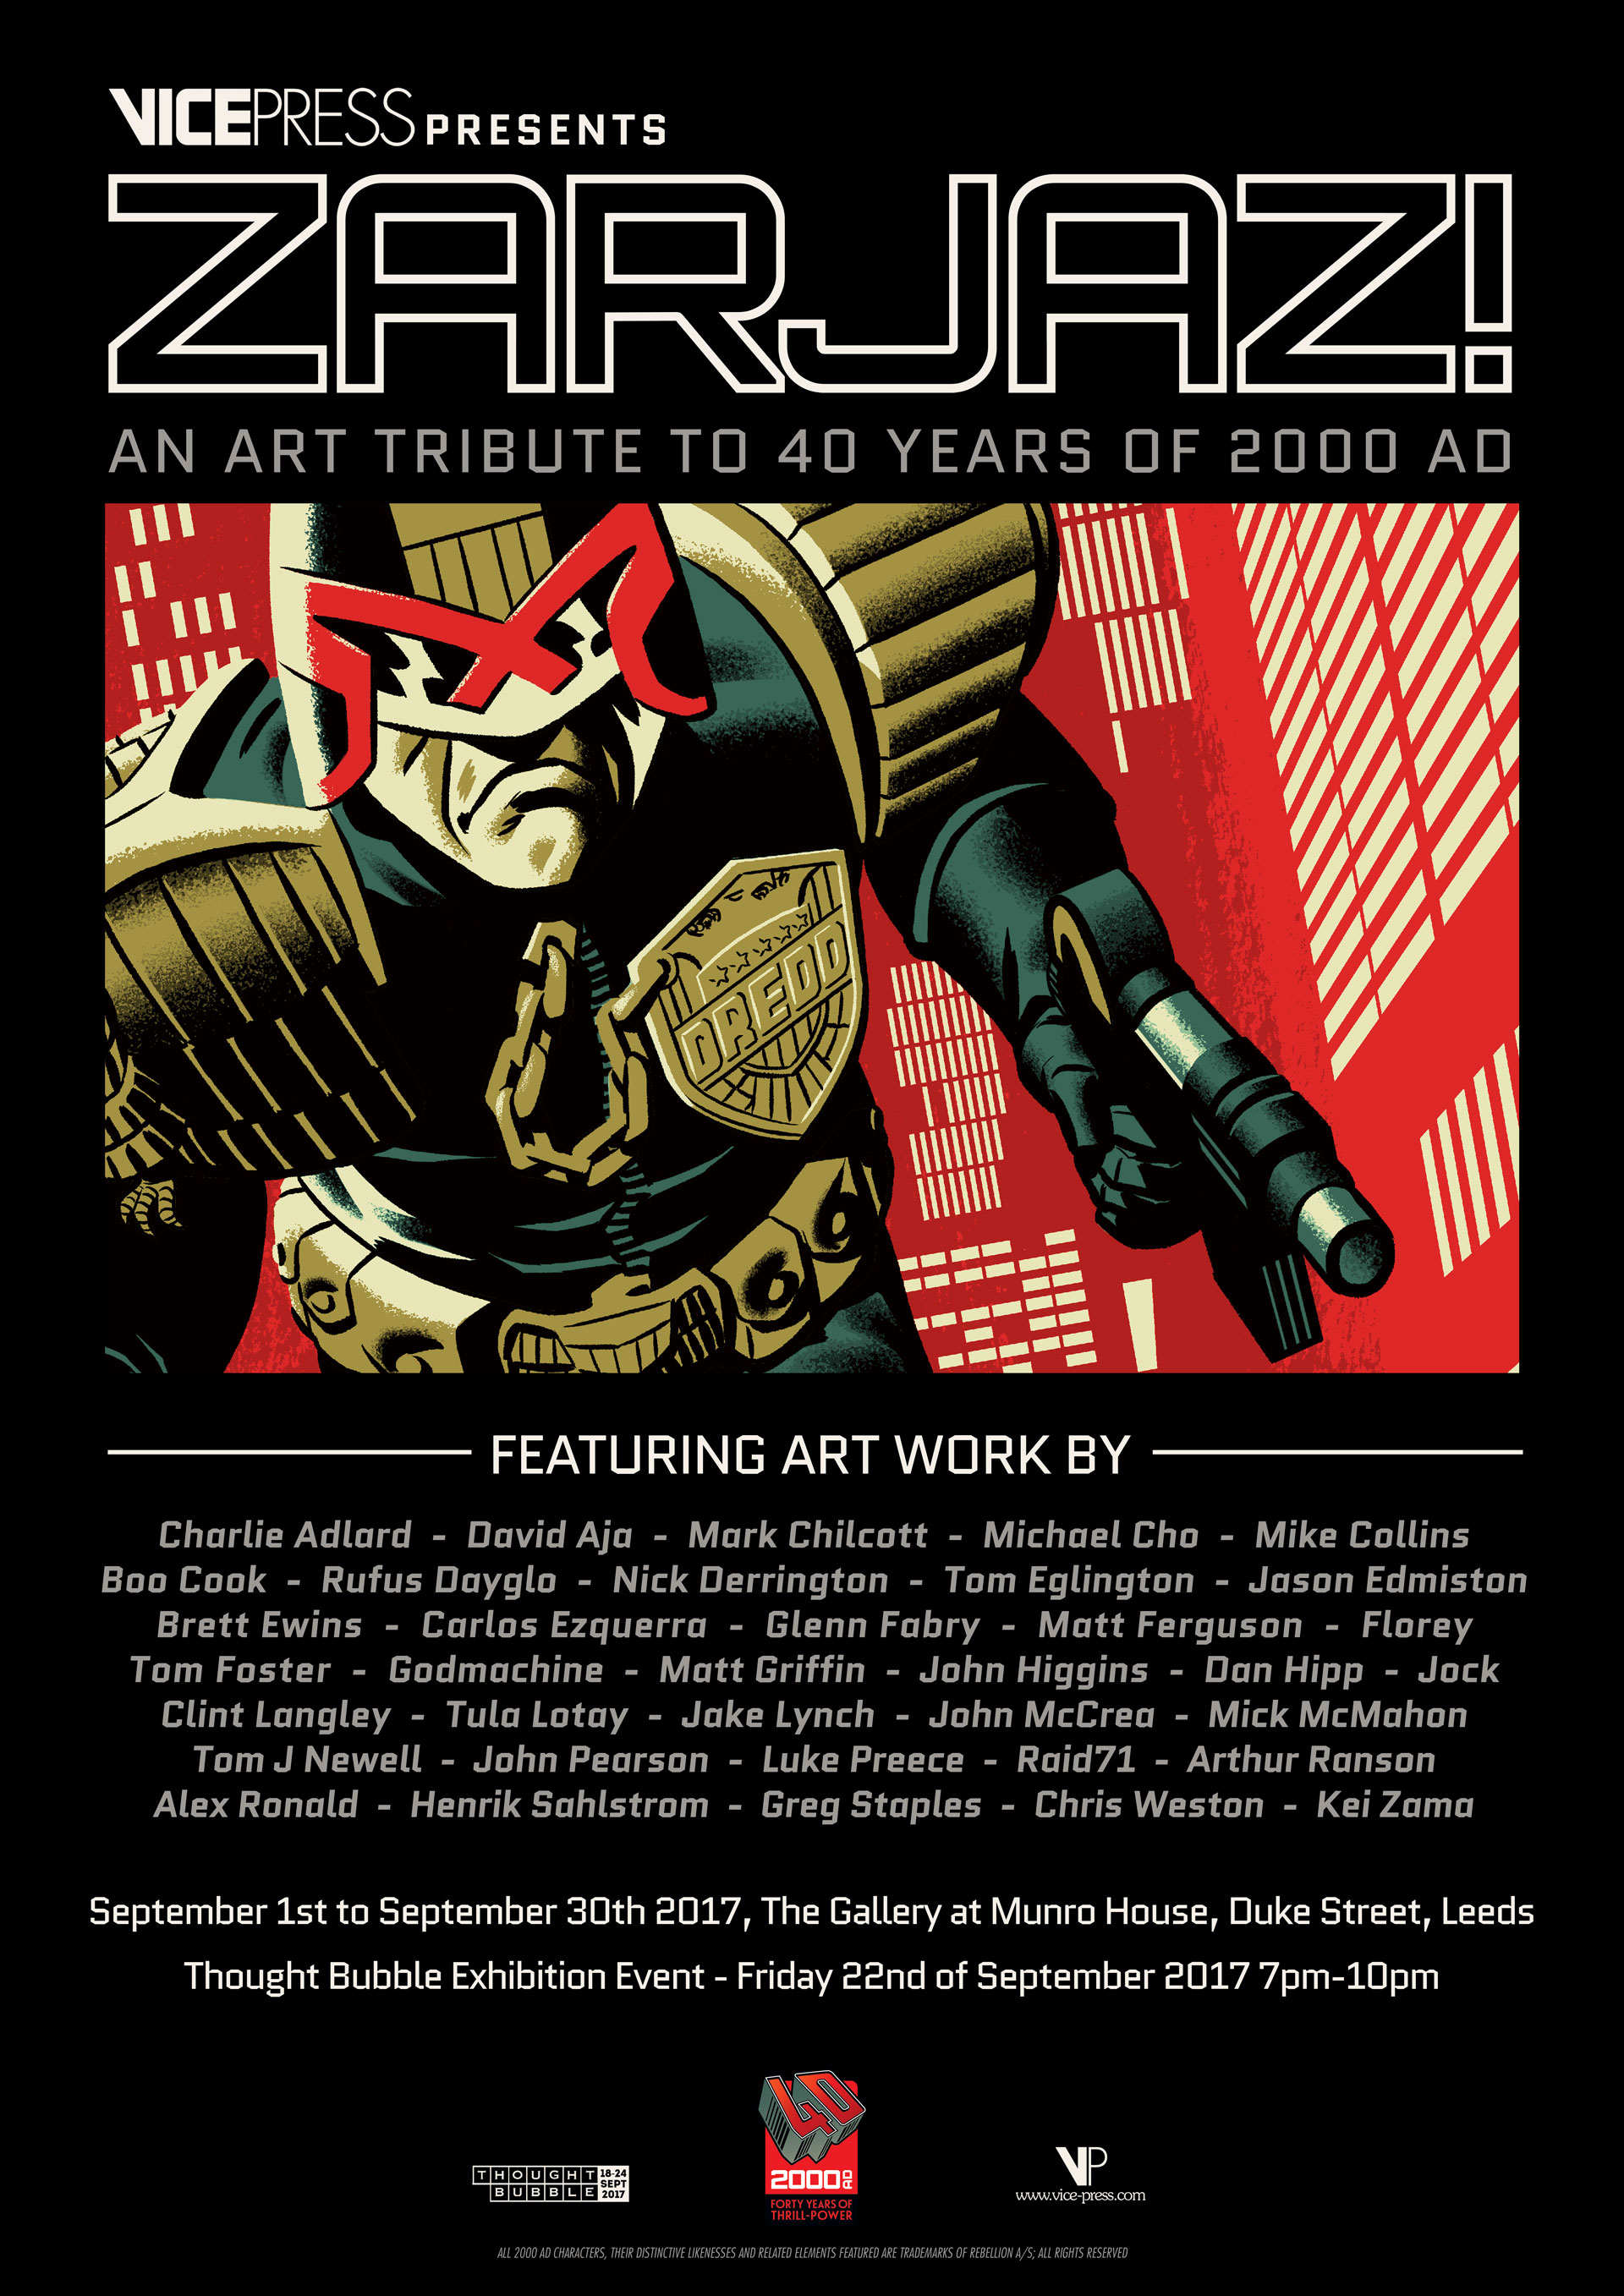 Zarjaz - 40 Years of 2000AD Poster